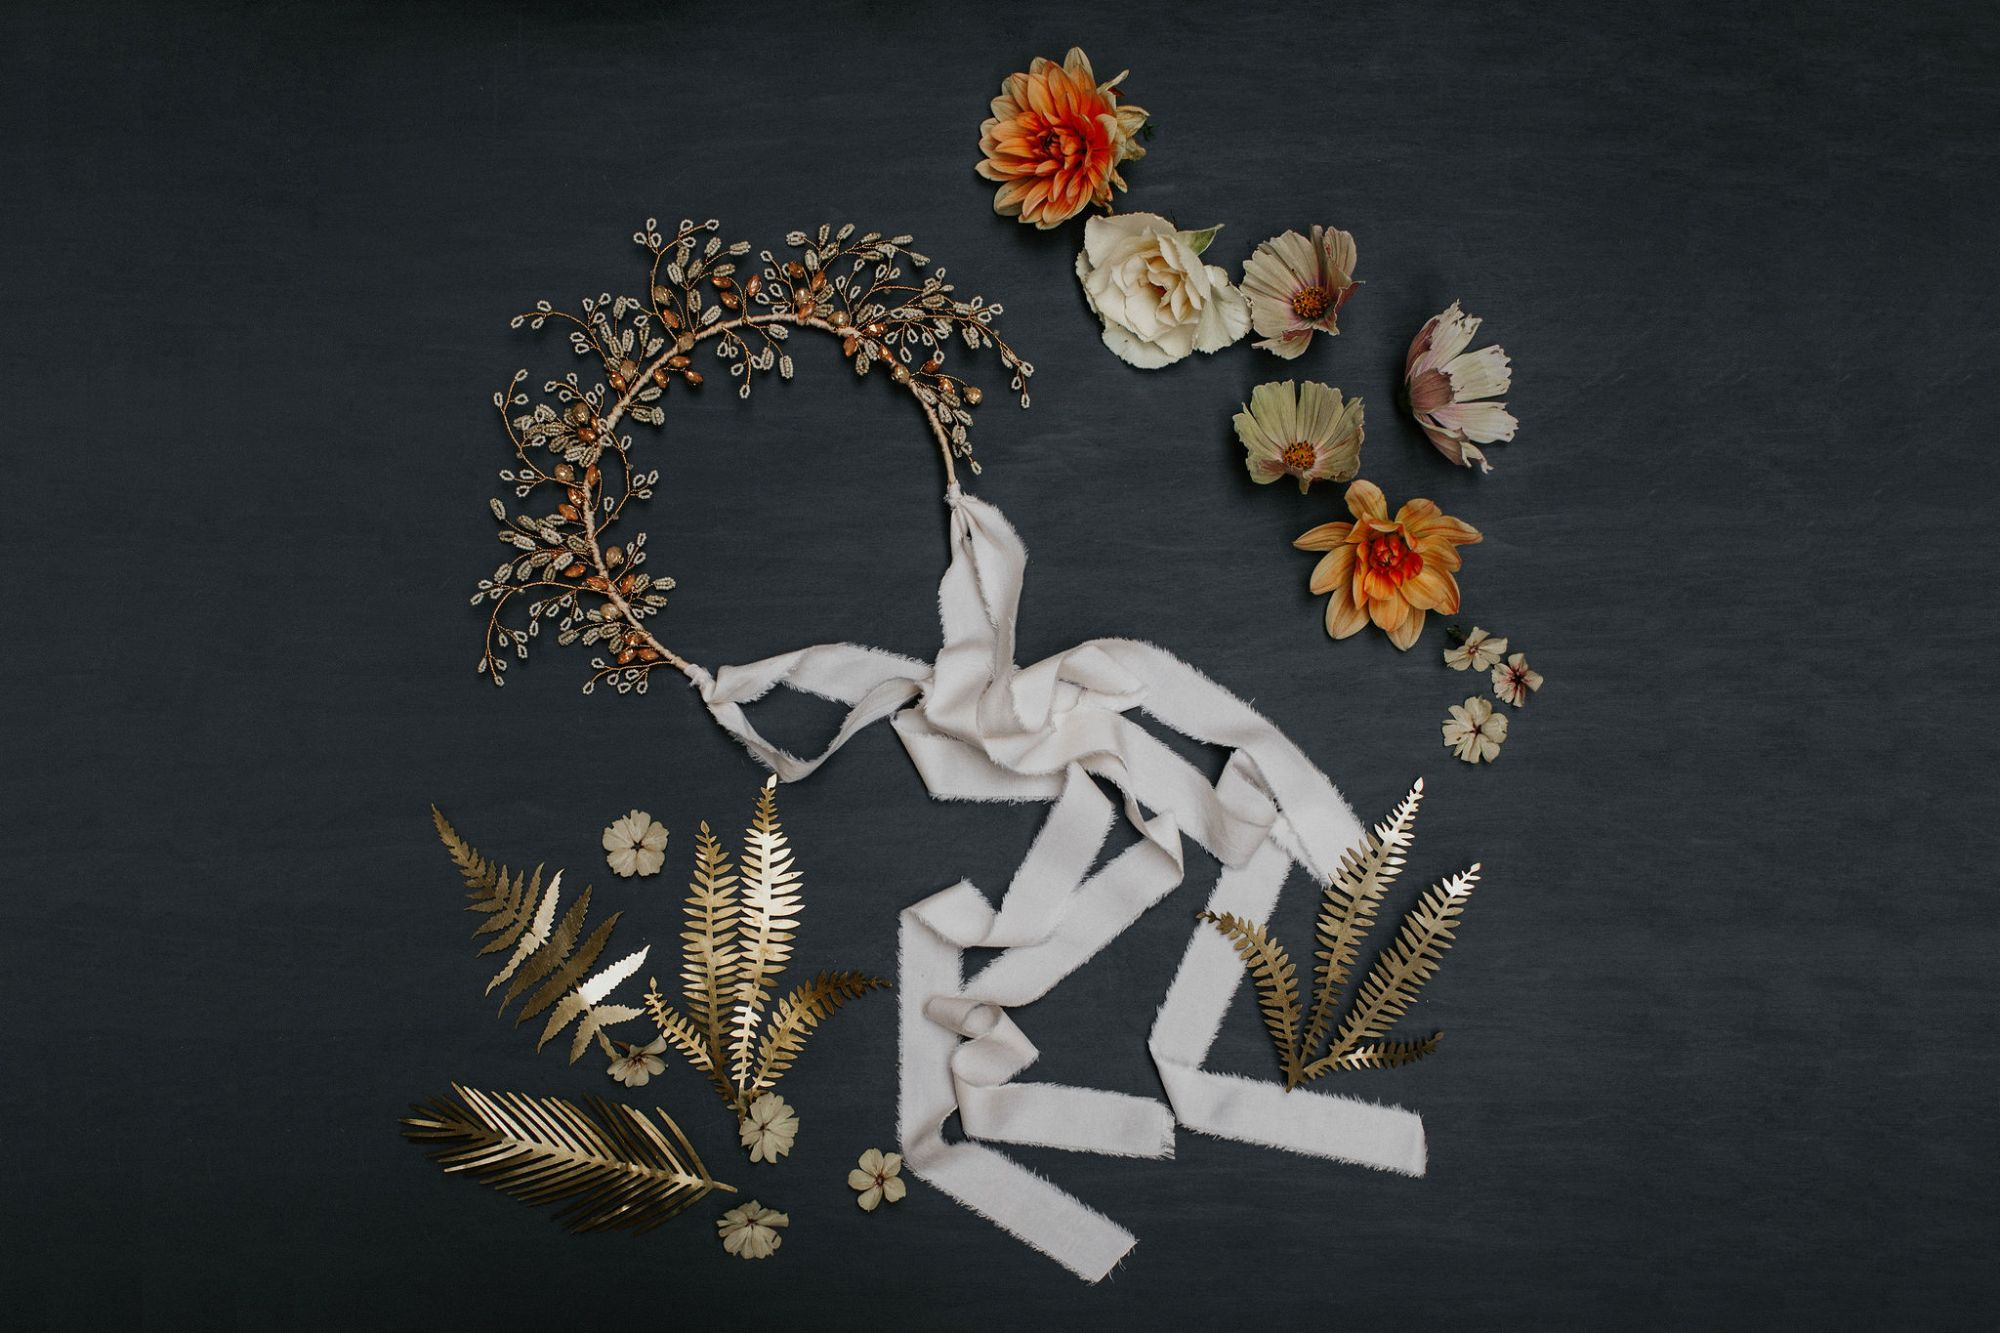 Buy handcrafted wedding headpieces and bridal hair accessories by Clare Lloyd